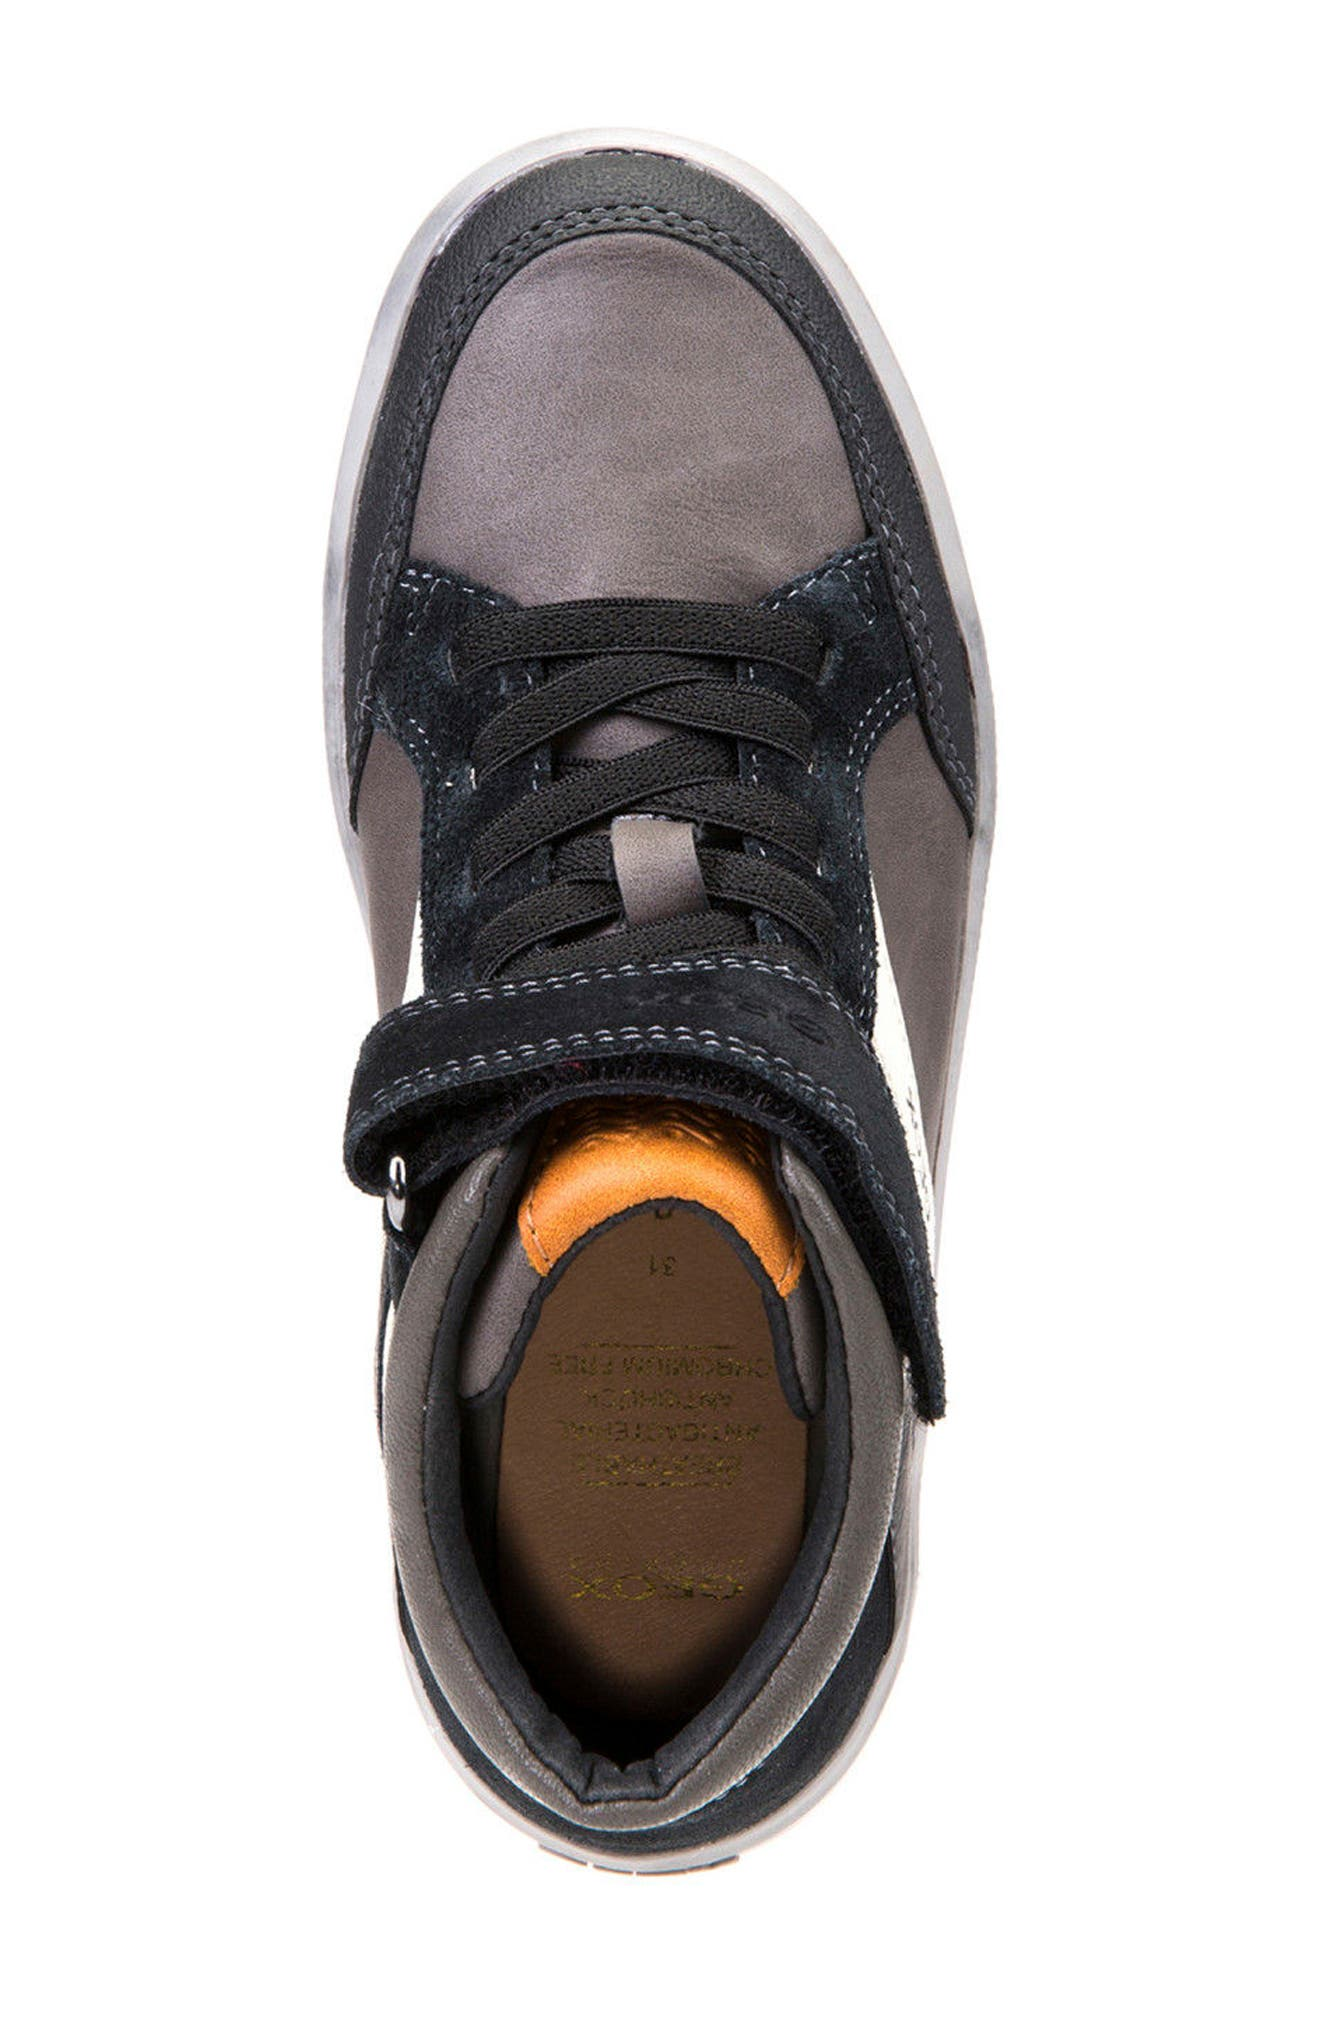 Arzach Mid Top Sneaker,                             Alternate thumbnail 5, color,                             001